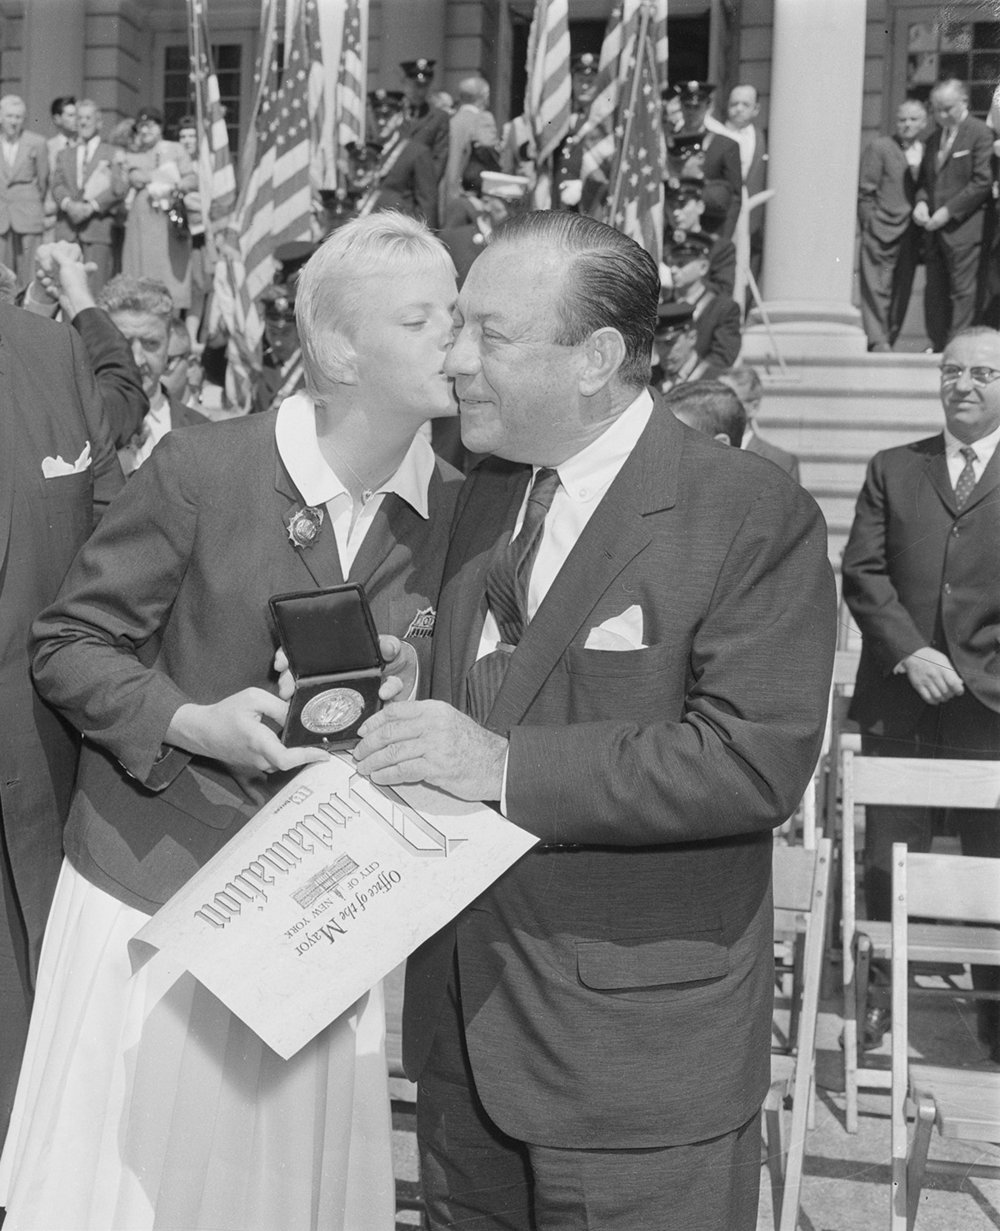 Lynn Burke, kissing Mayor Wagner as he presents her with a City medallion, September 1960. Official Mayoral Photographs, NYC Municipal Archives.